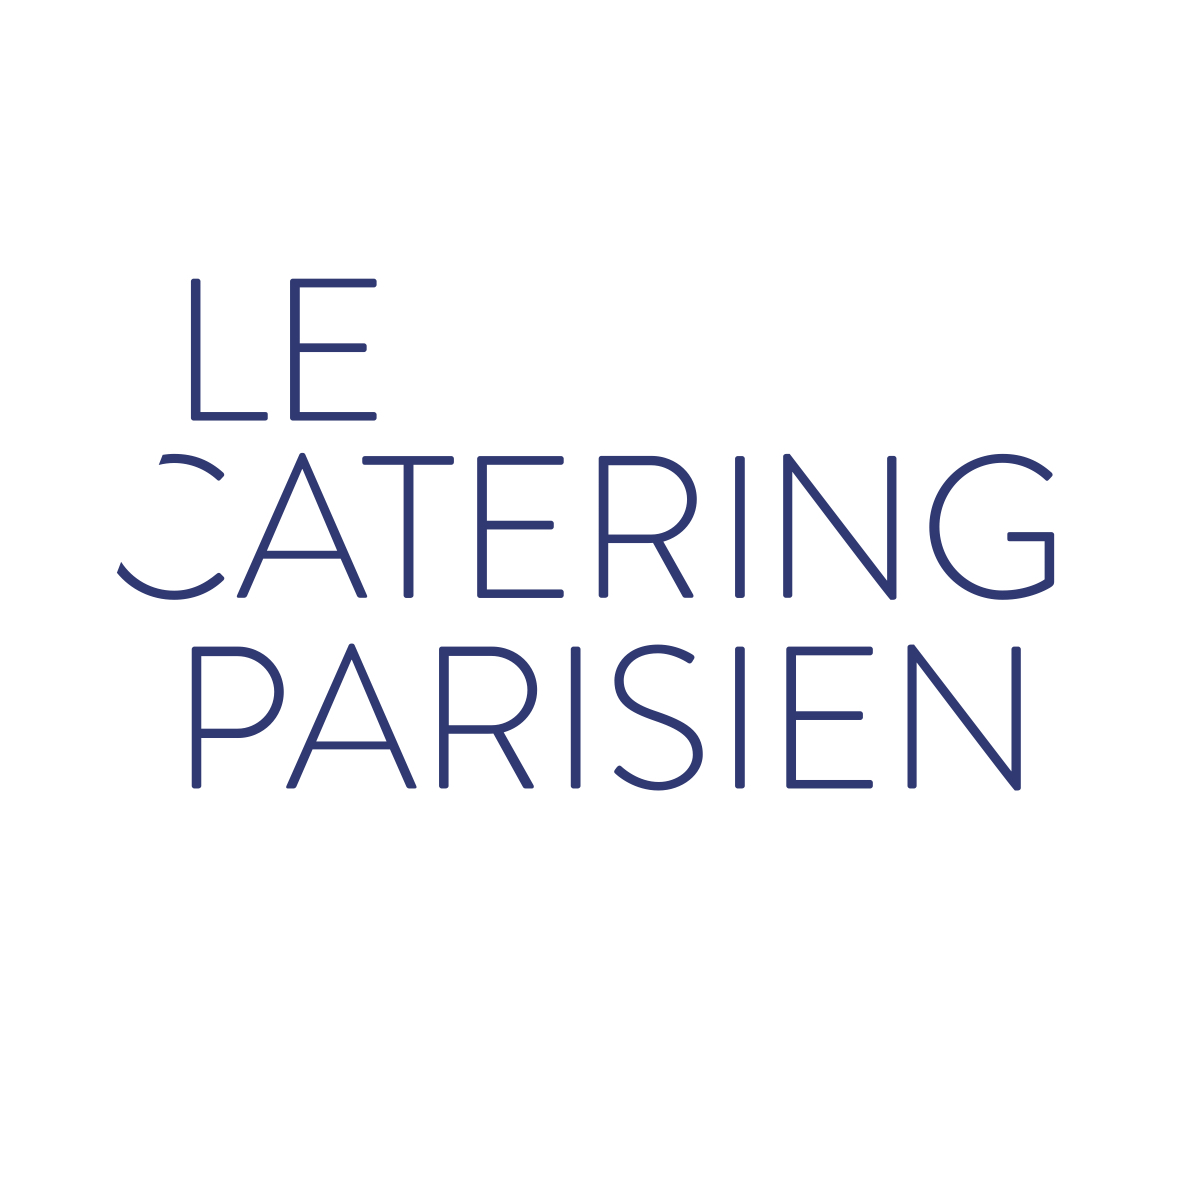 Catering Parisien